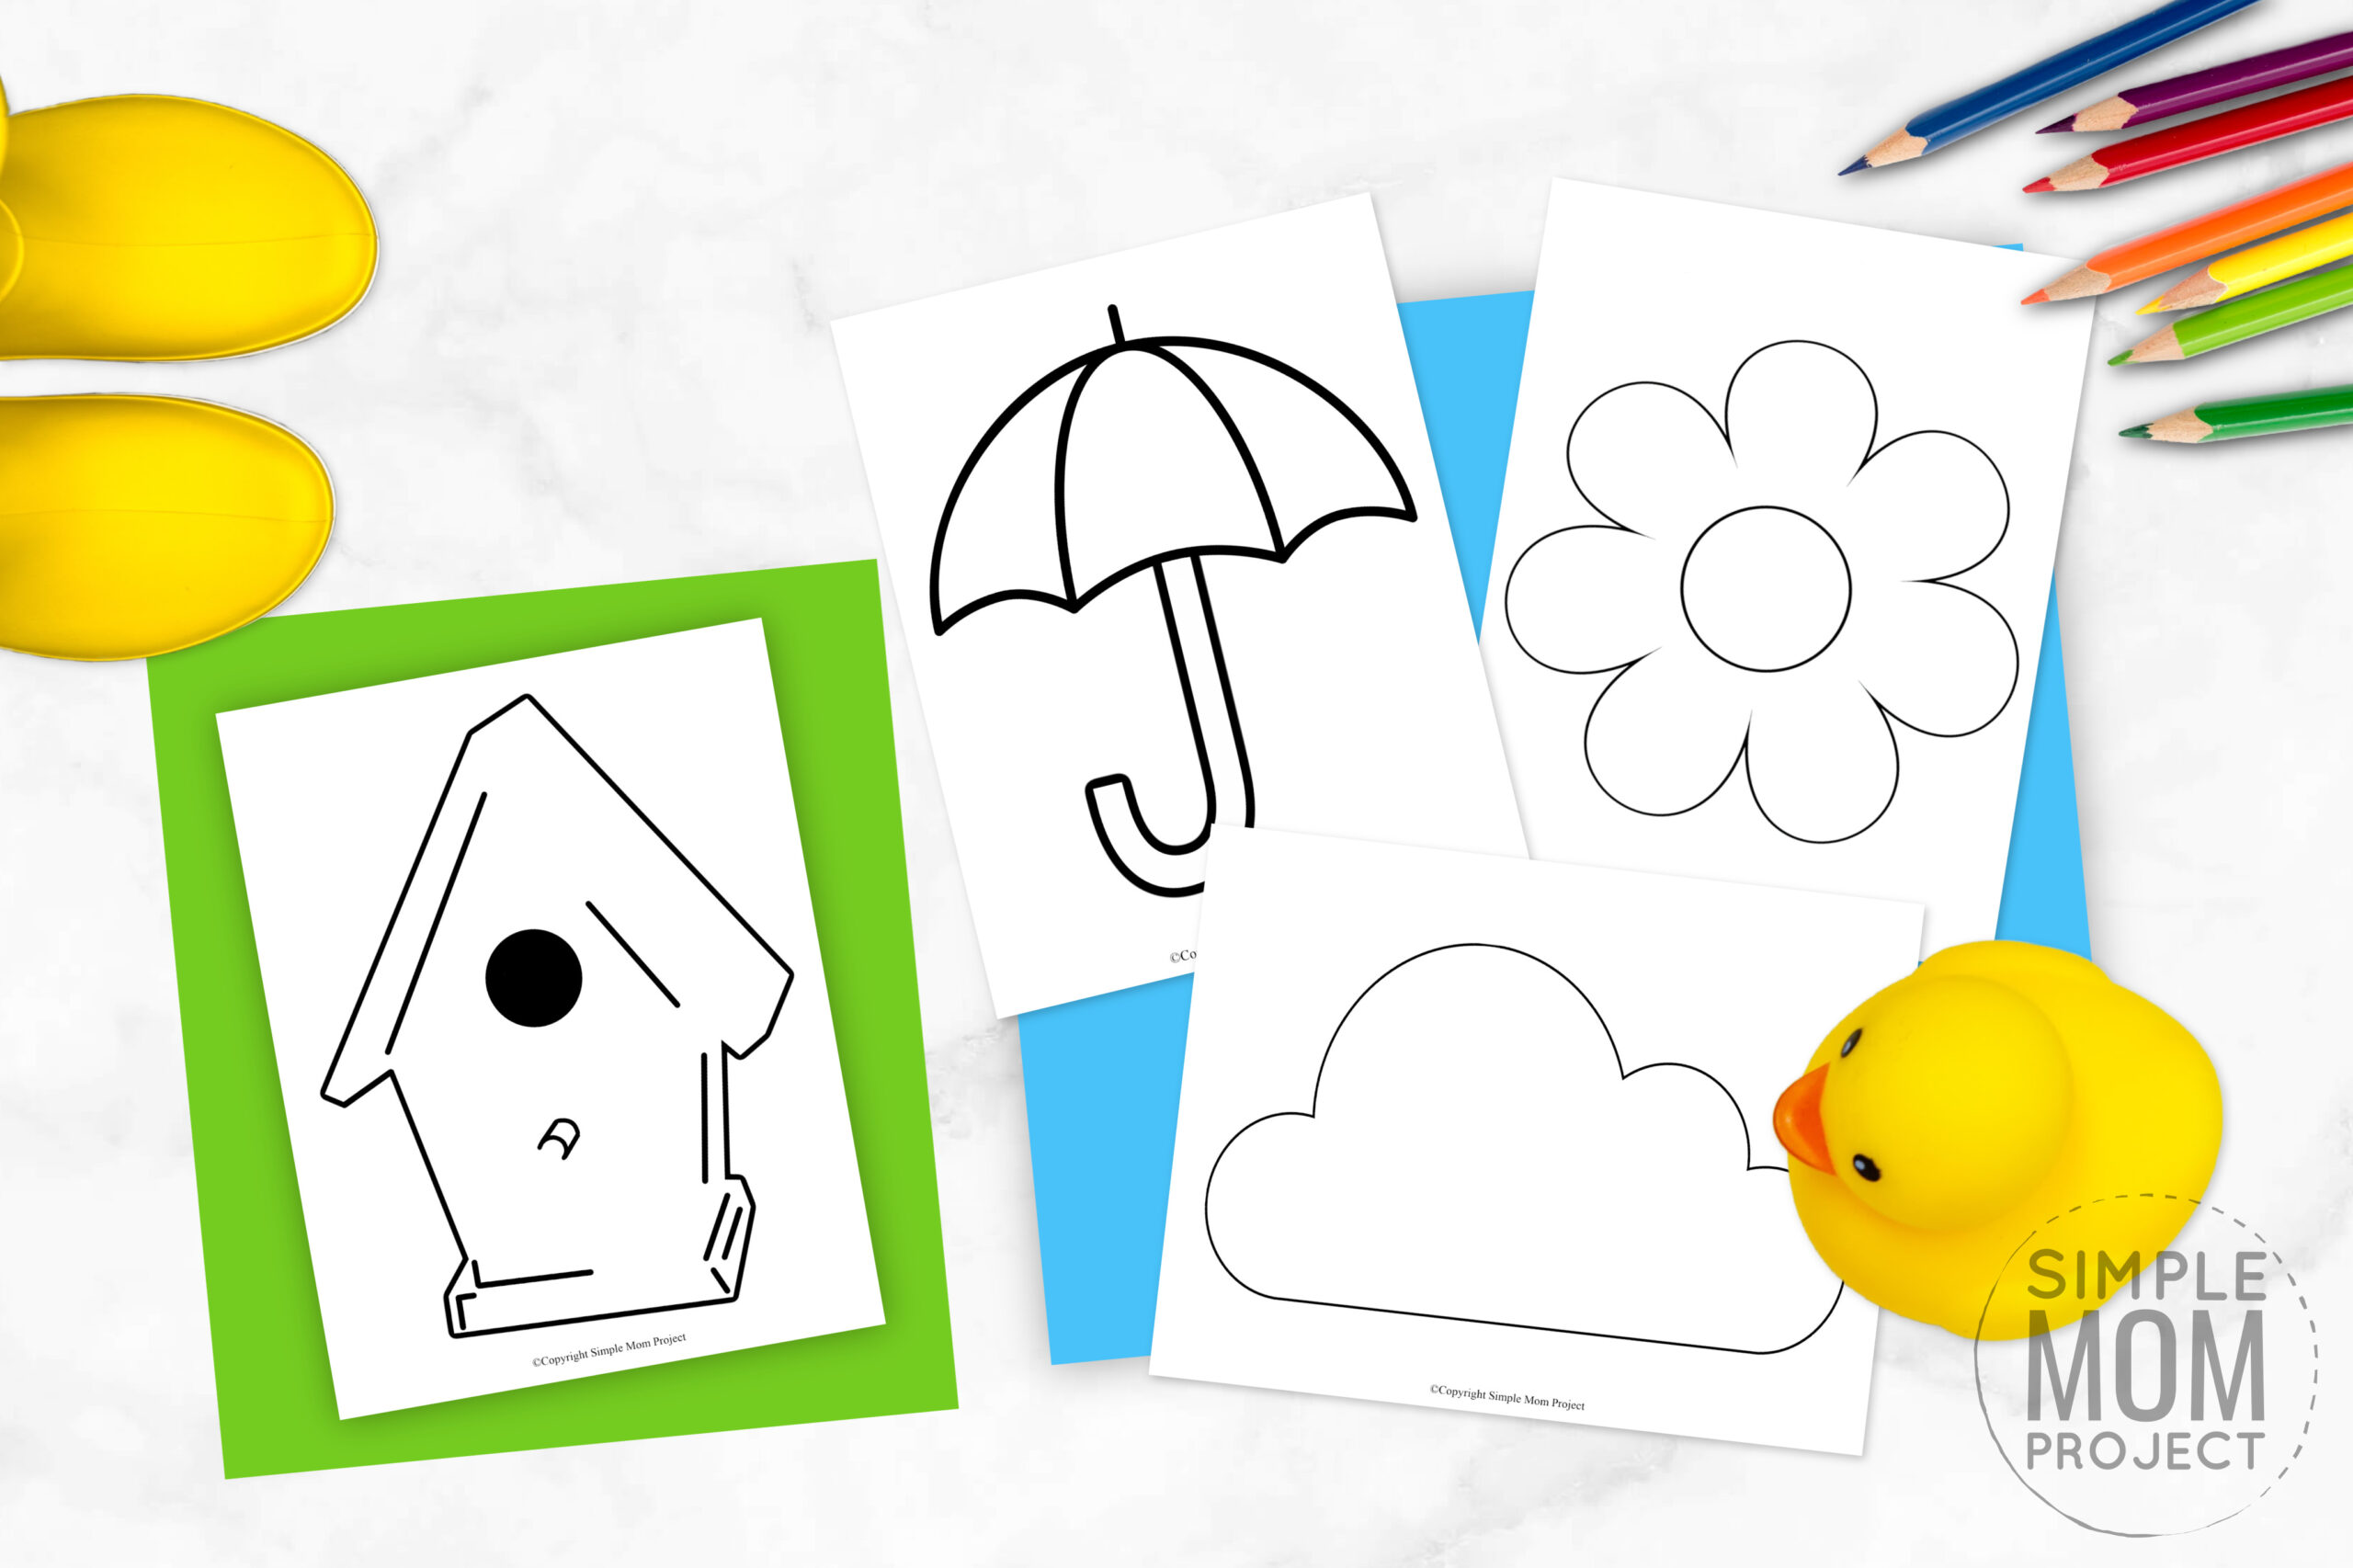 Printable Spring Templates for Preschool, kindergarten and toddlers for spring crafts